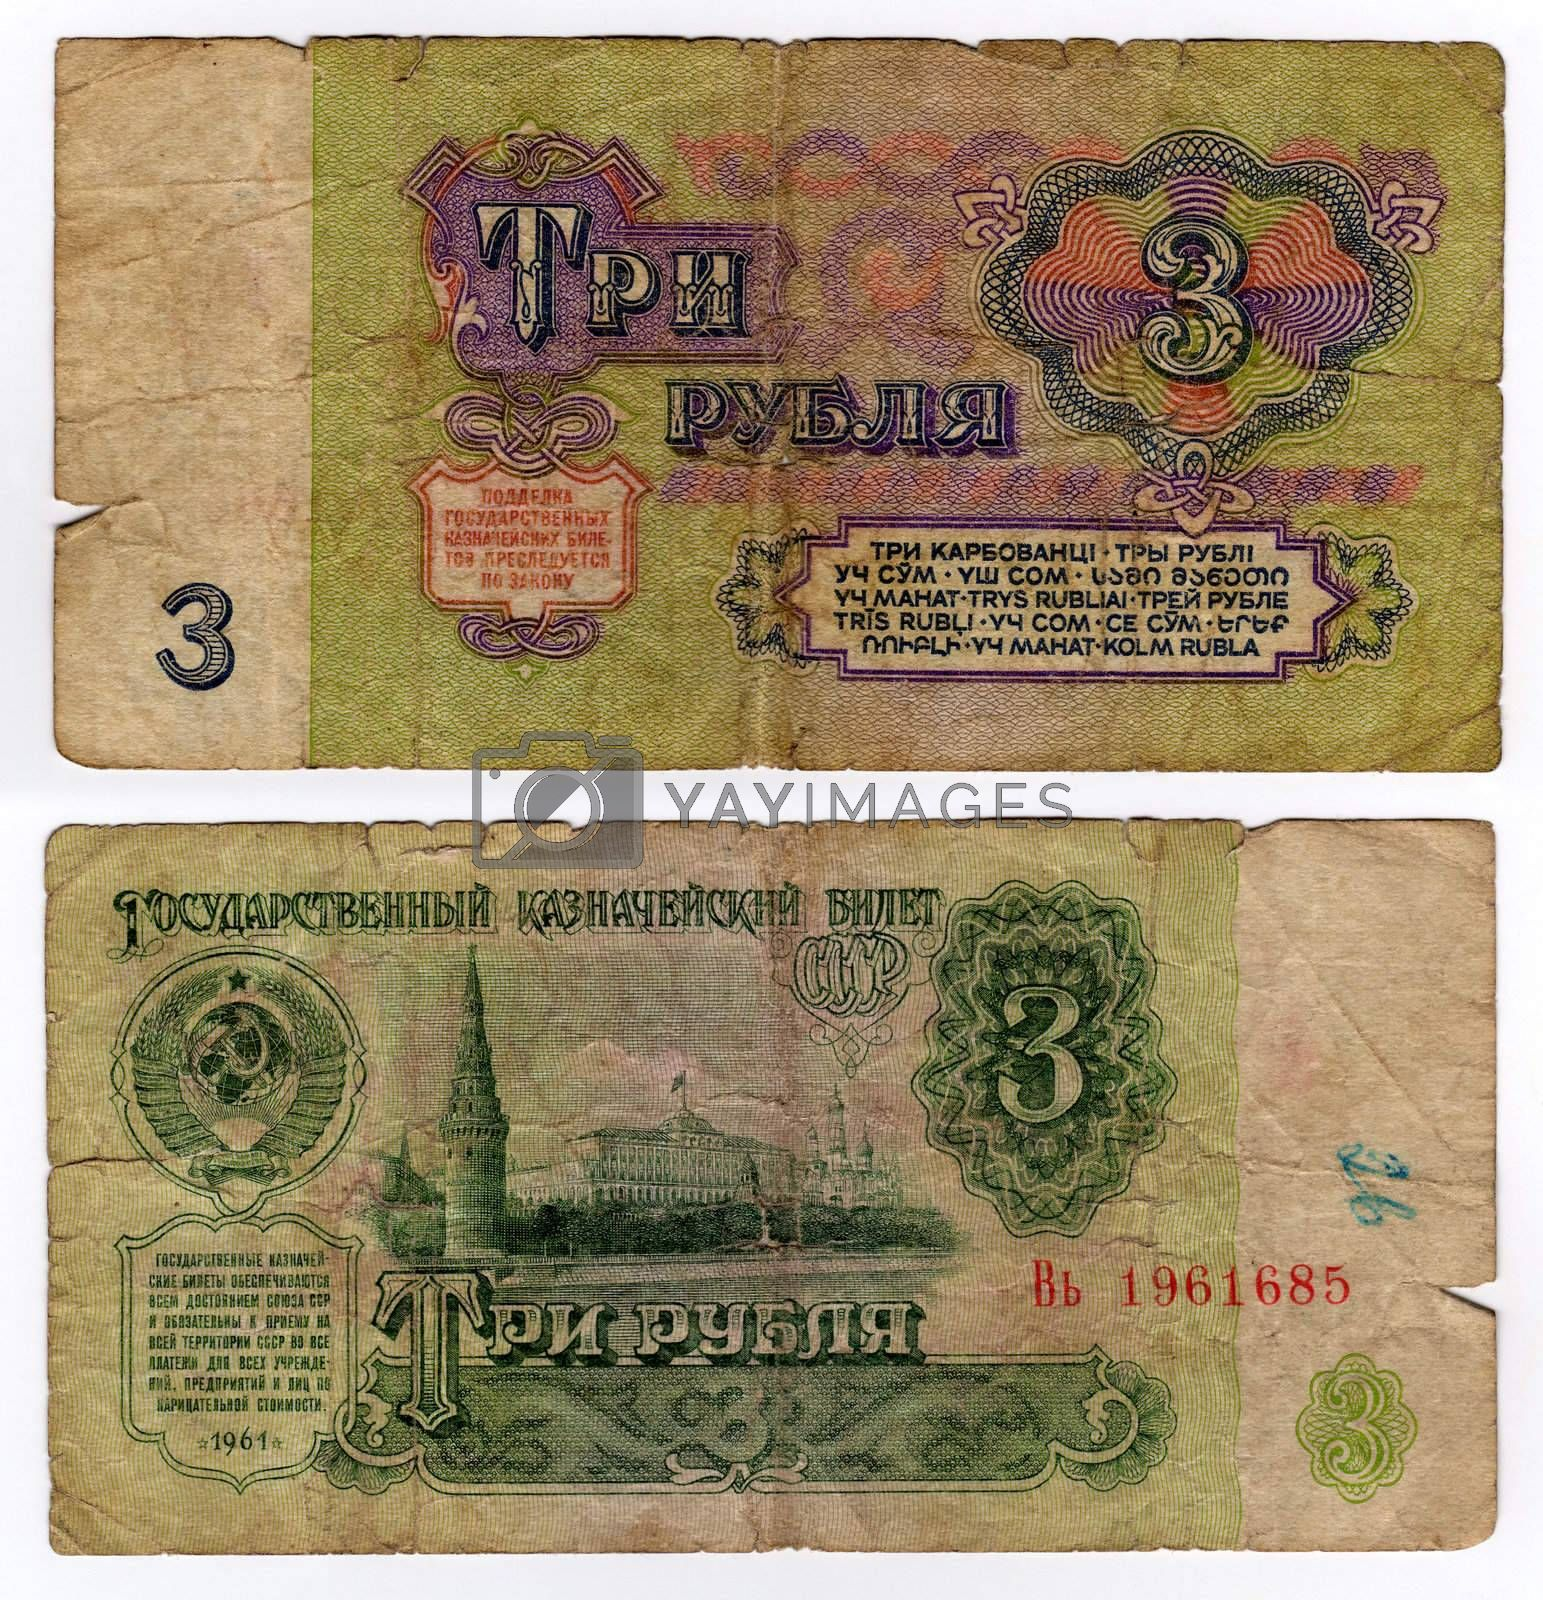 high resolution vintage russian banknote from 1961